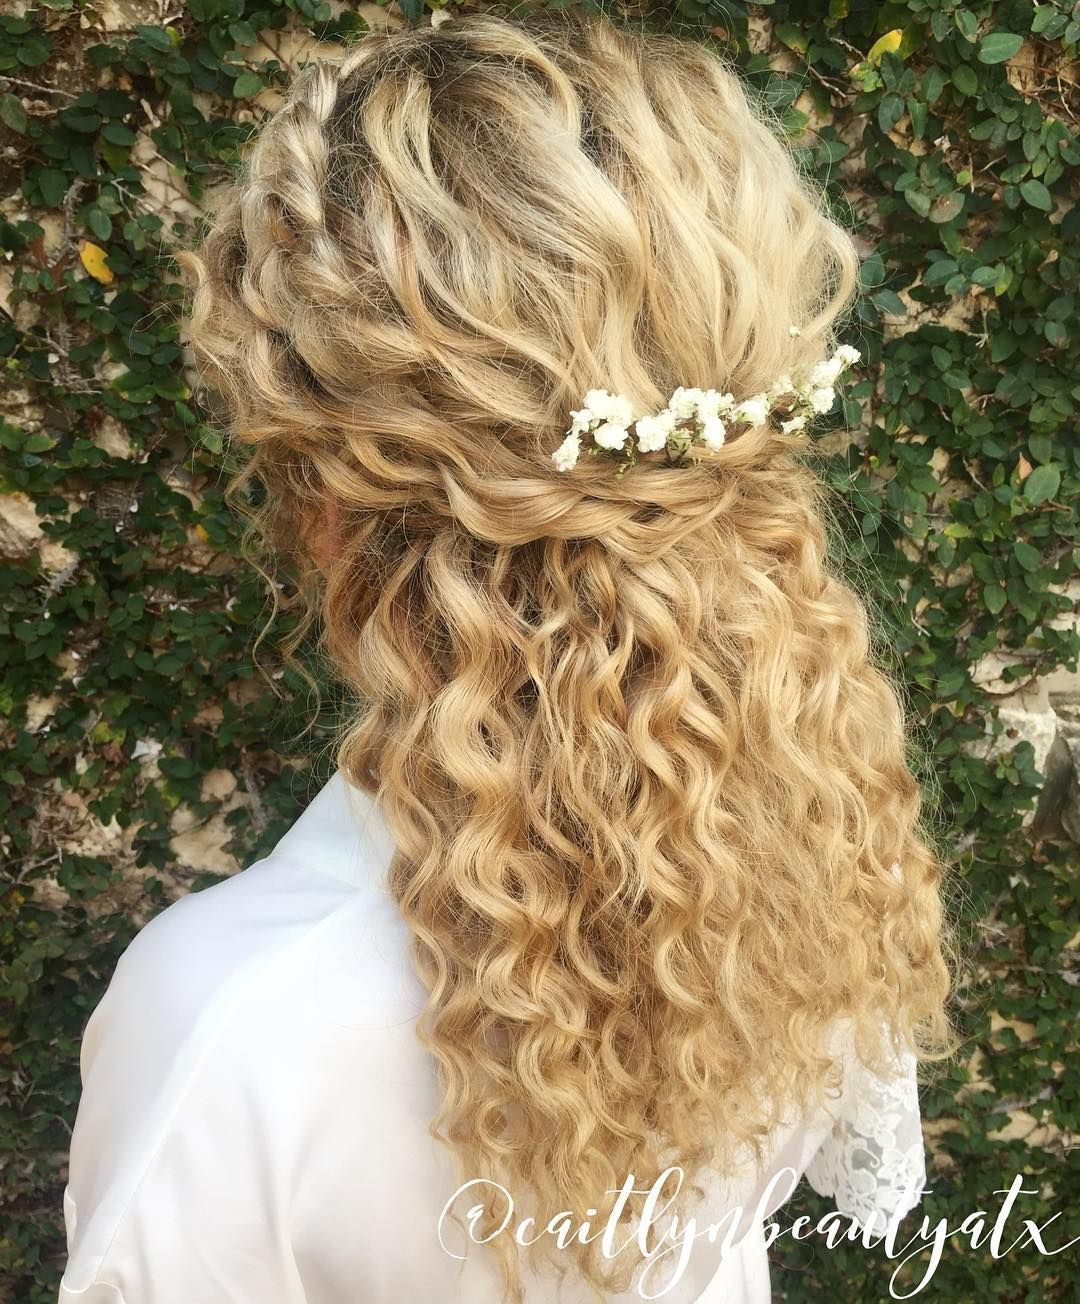 Natural Curly Bridal Hair Half Up Half Down With A Braid In 2020 Curly Hair Half Up Half Down Curly Hair Styles Naturally Curly Bridal Hair